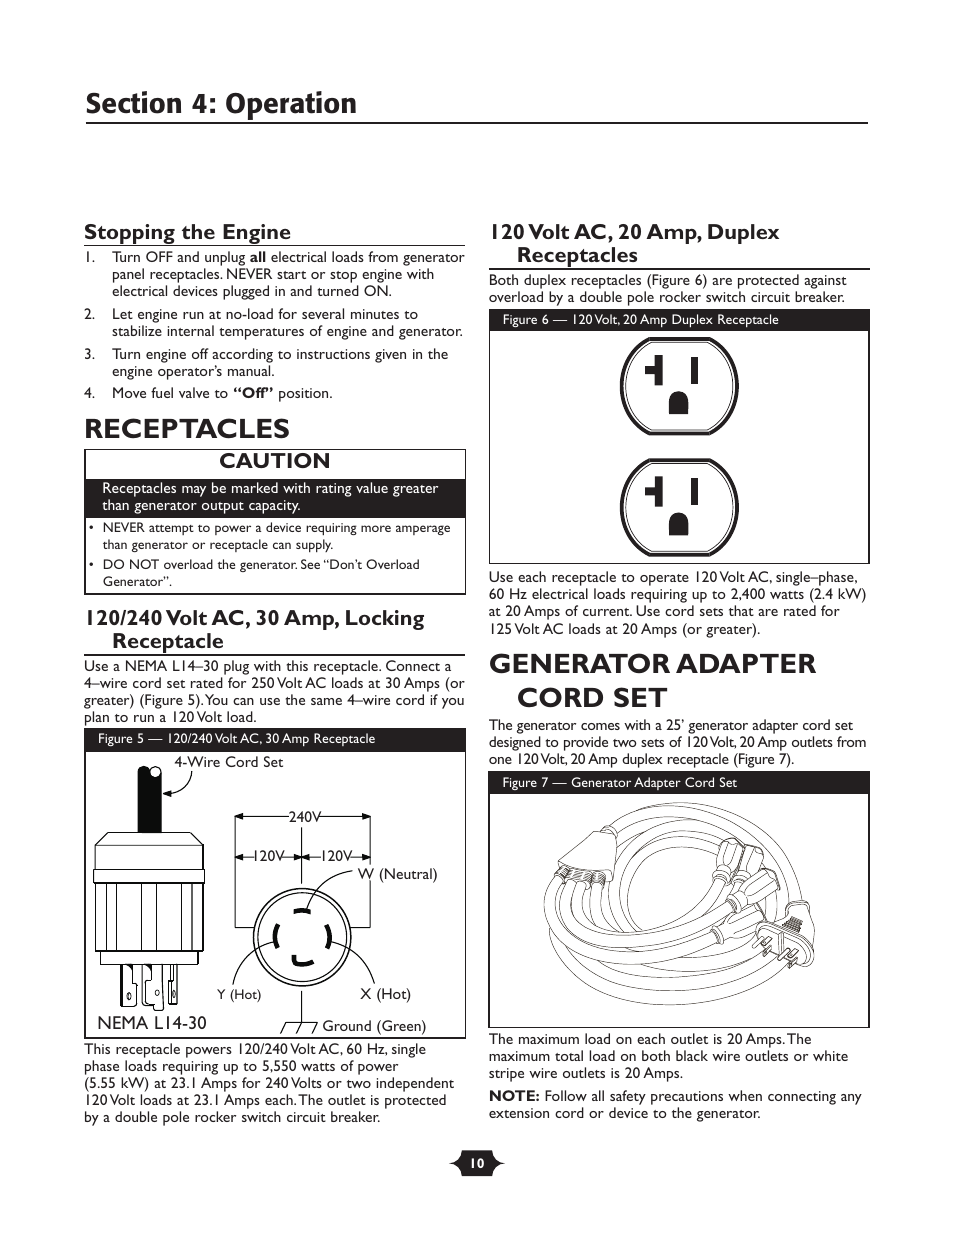 Receptacles Generator Adapter Cord Set Stopping The Engine Troy Wiring A L1430 Plug Bilt 030245 User Manual Page 10 28